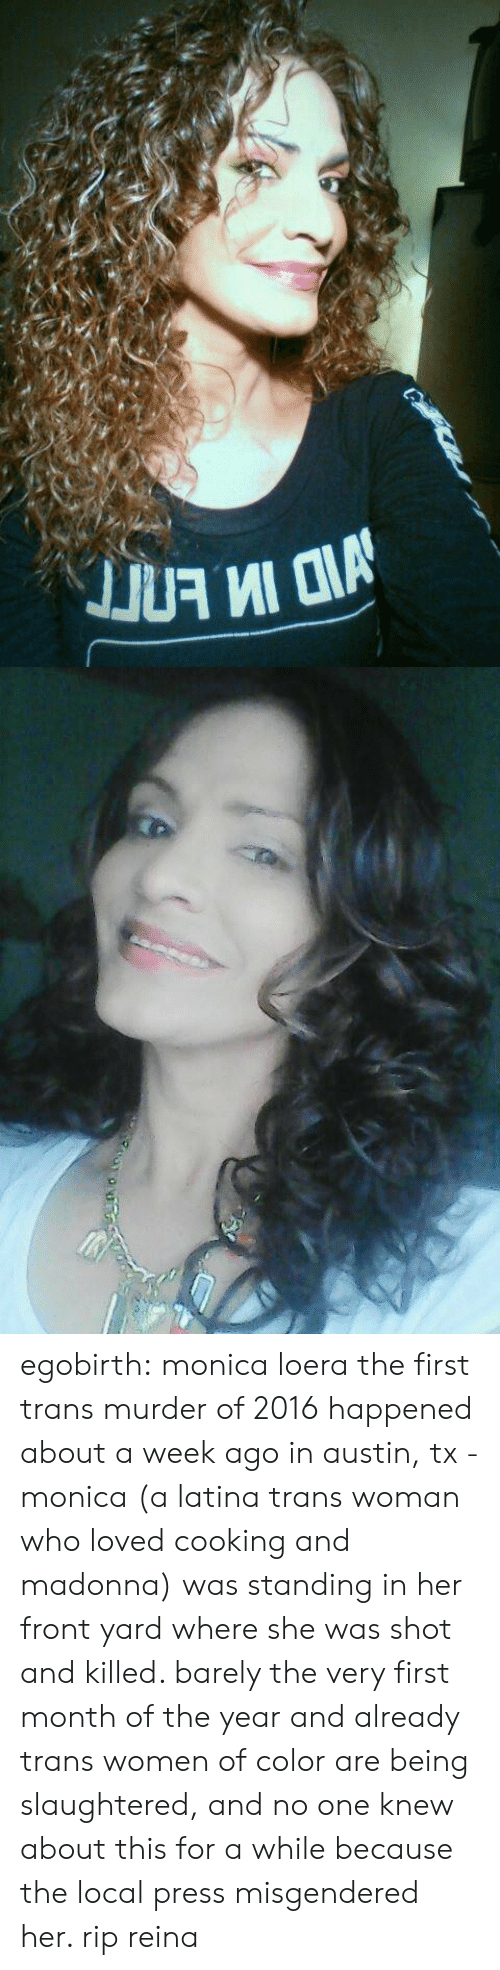 Madonna, News, and Tumblr: egobirth:  monica loera   the first trans murder of 2016 happened about a week ago in austin, tx - monica (a latina trans woman who loved cooking and madonna) was standing in her front yard where she was shot and killed. barely the very first month of the year and already trans women of color are being slaughtered, and no one knew about this for a while because the local press misgendered her. rip reina